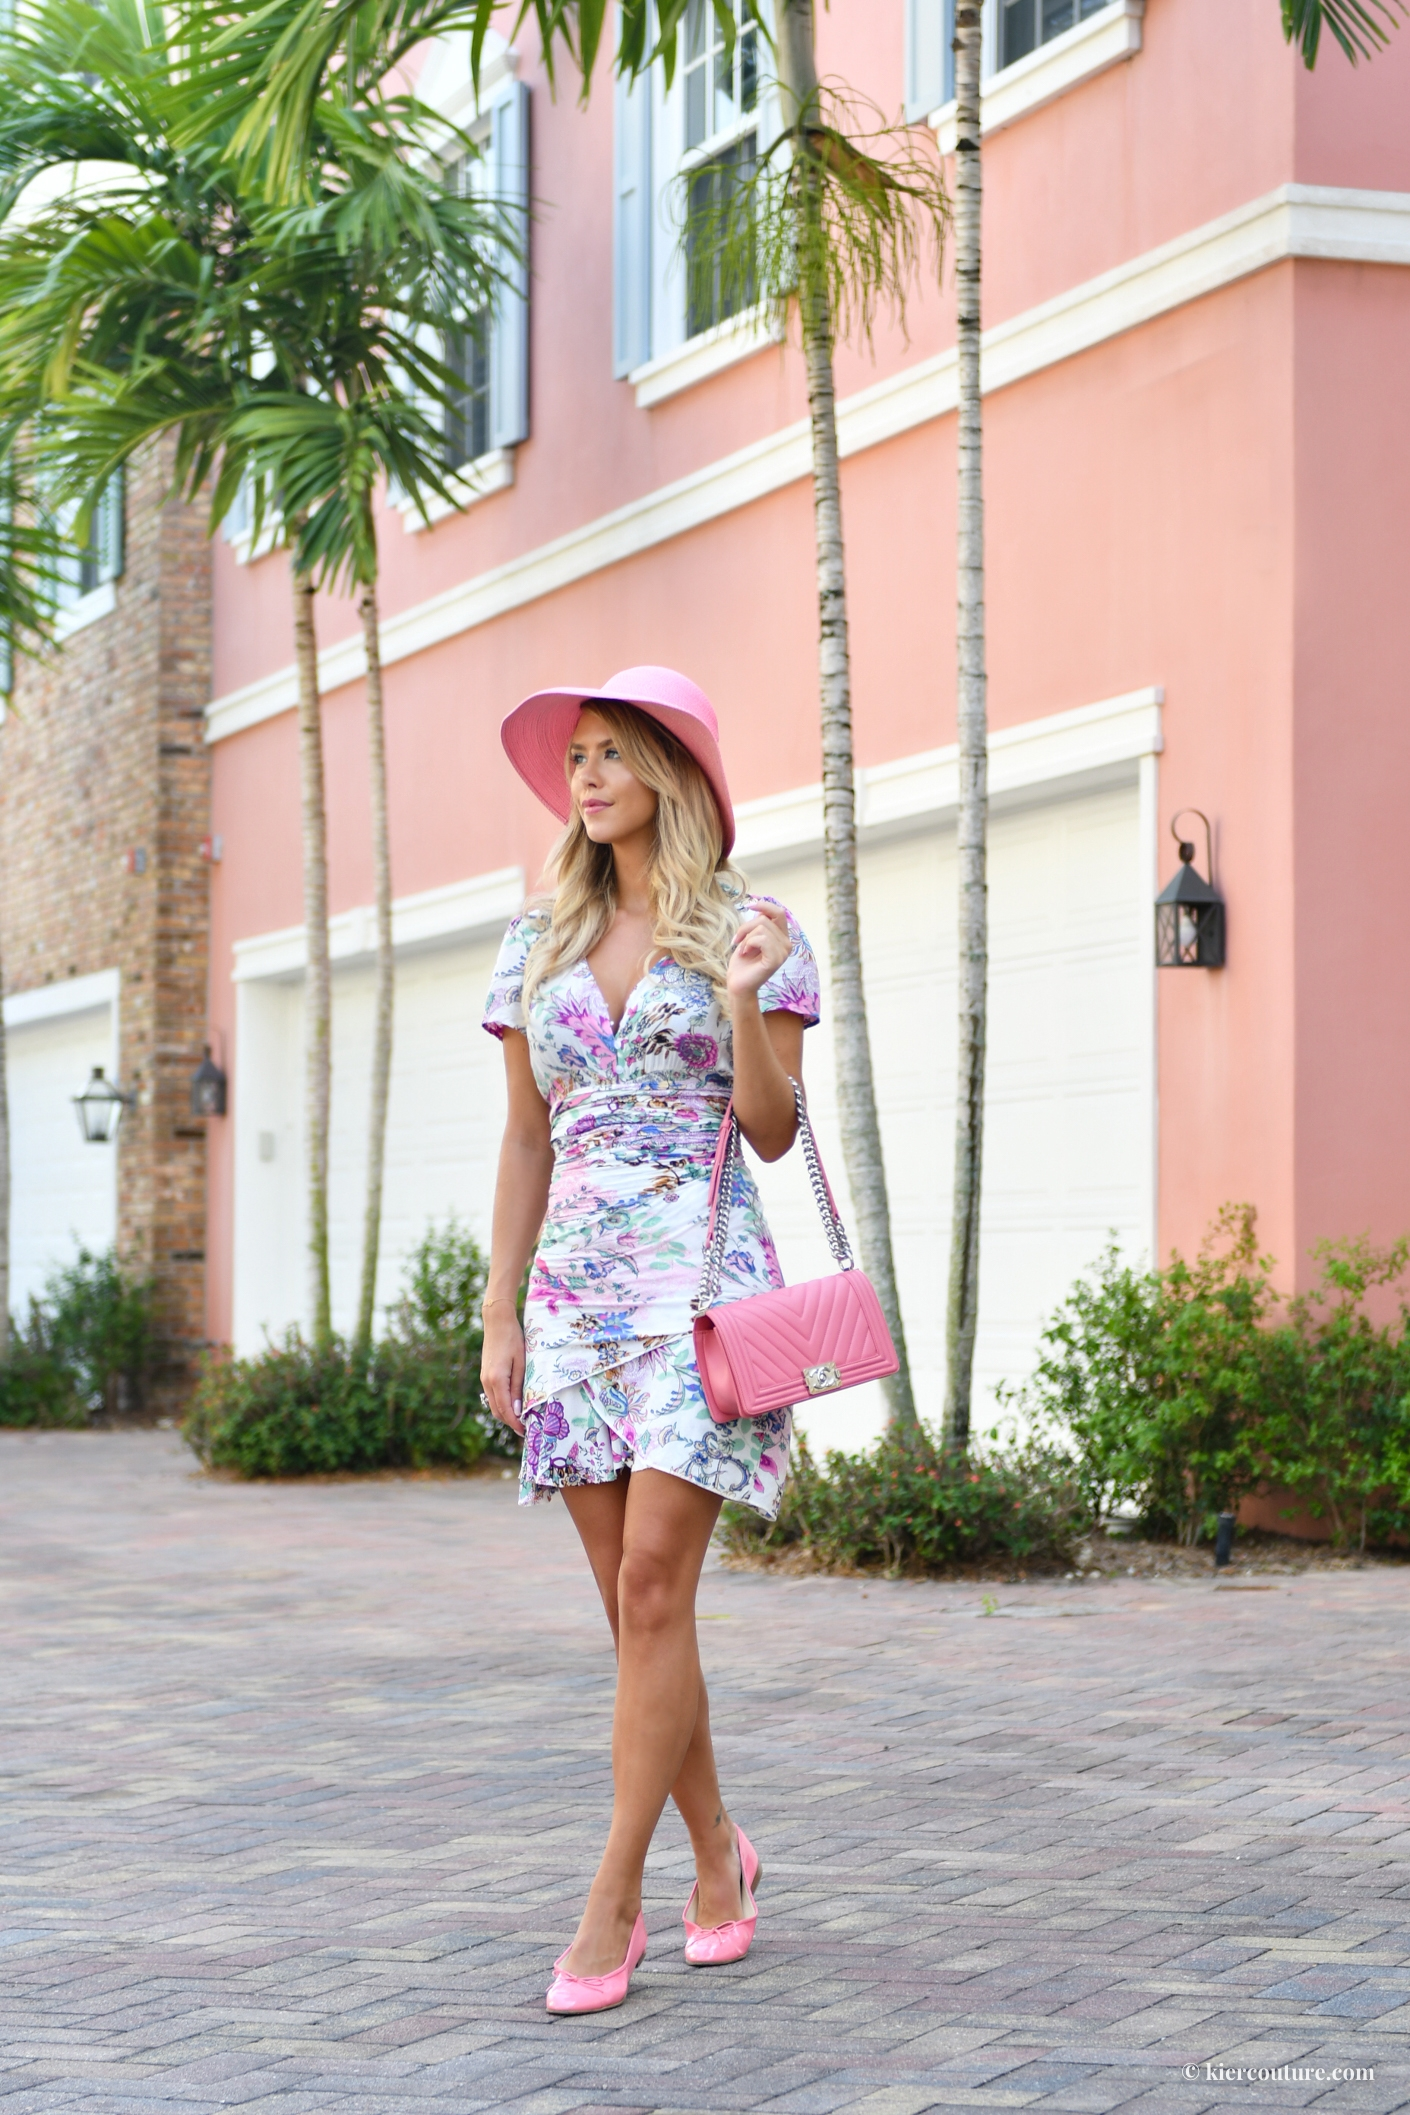 Pink chanel outfit style